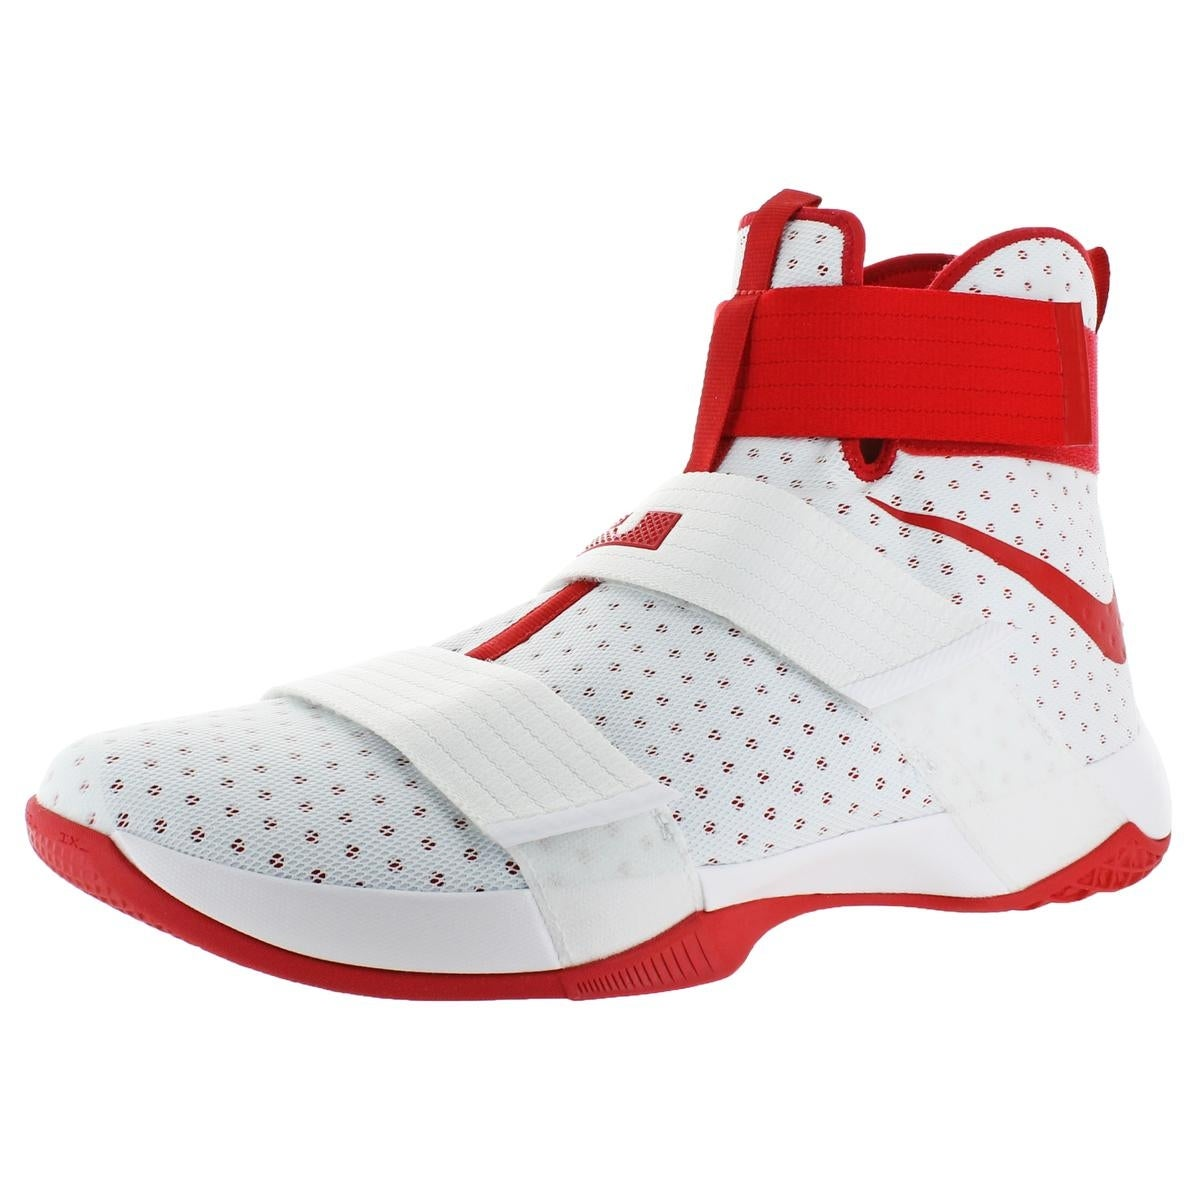 ff57260ad8308 Nike LeBron Soldier 10 Men s Mesh High-Top Basketball Shoes White Size 18 -  18 medium (d)